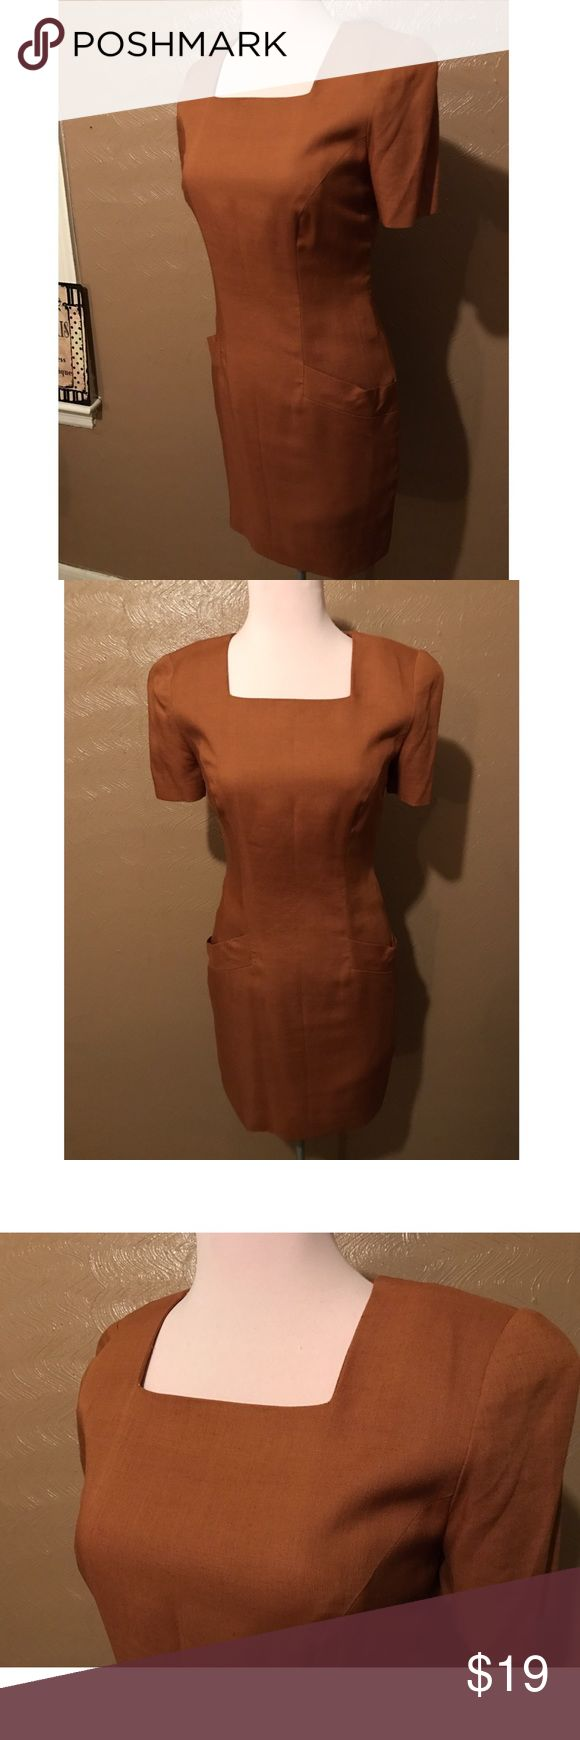 """Vintage, Mini Dress Copper/ Brown, Vintage Dress by """"Santa Fe by Jim Tremblay"""".                                                                    Dress stops above the knee, has shoulders pads & two functional pockets on the front. Size 4 with snug, shapely fit. This dress has No Defects.                                      **FYI:** - I do post and sell on other sites, so if this item is suddenly removed or not available, it means it has sold and won't be reposted - Feel free to make me an…"""